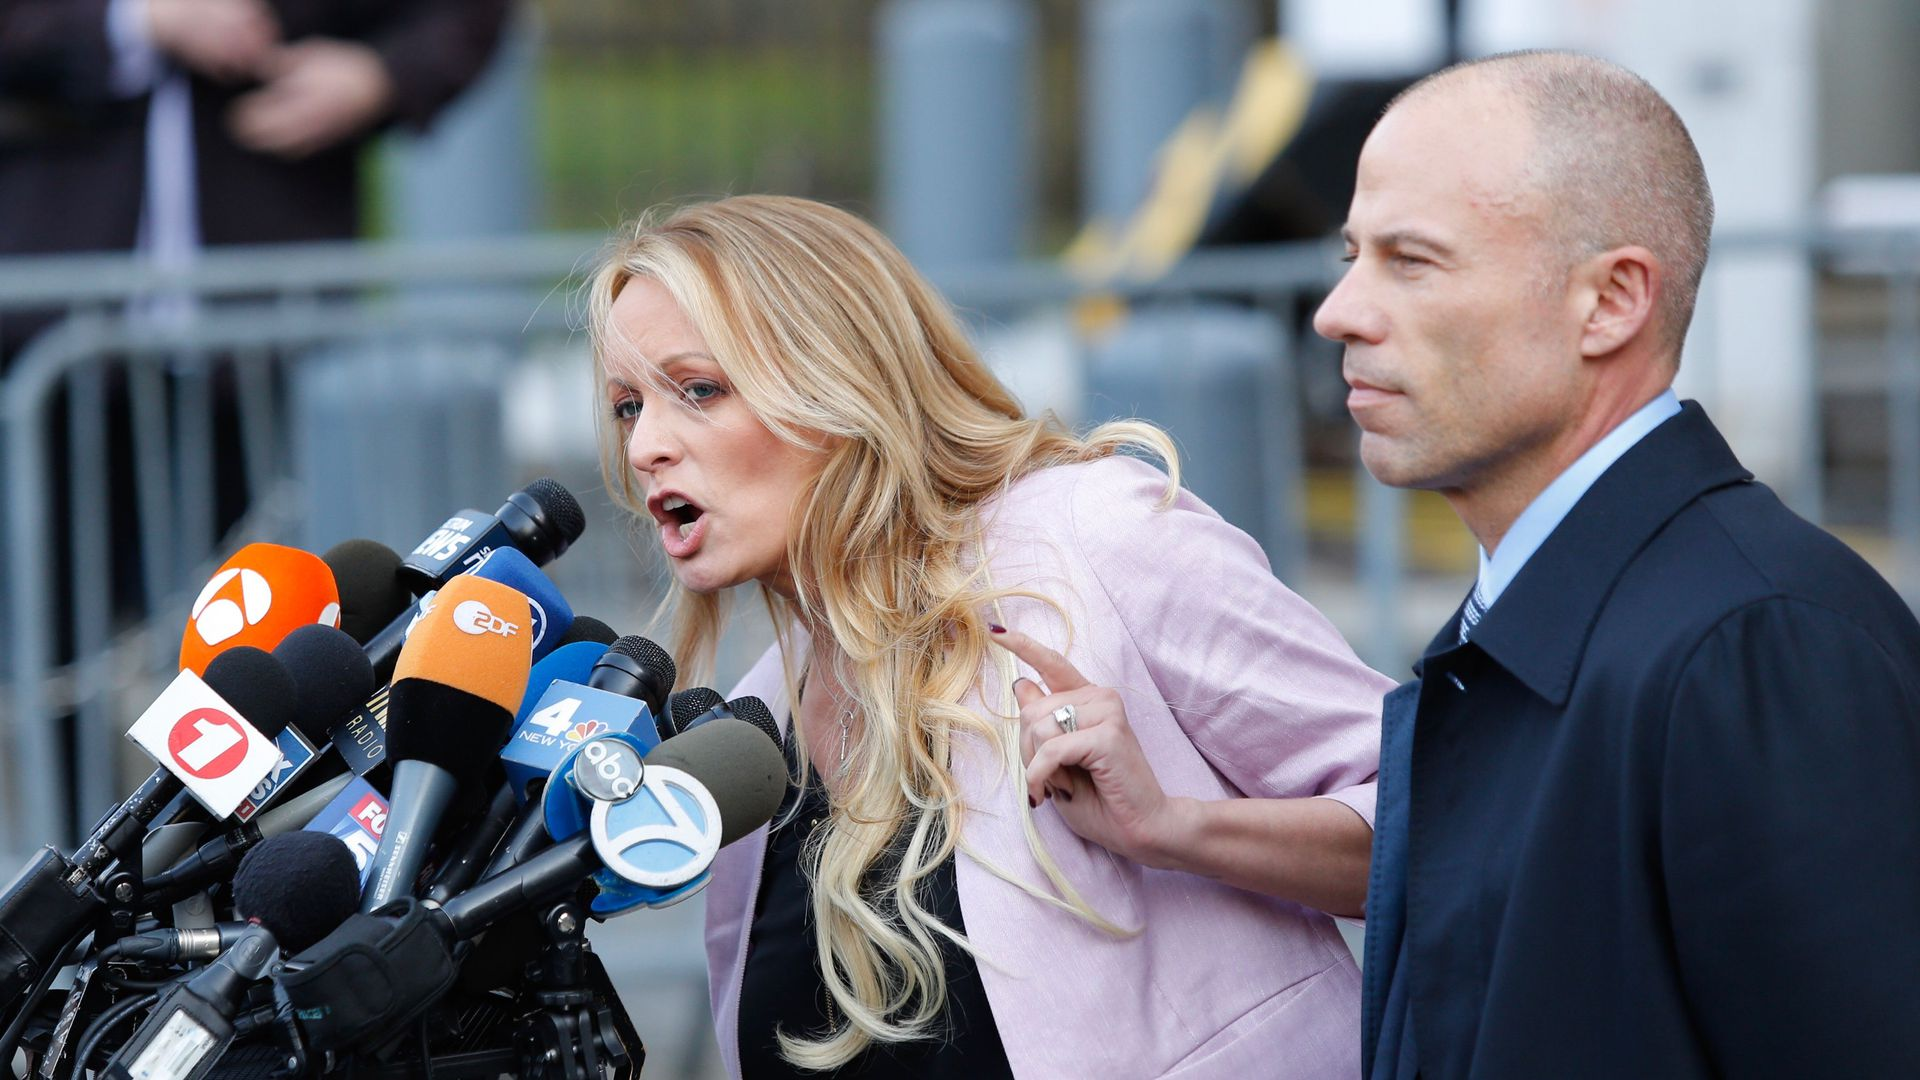 Adult-film actress Stephanie Clifford, also known as Stormy Daniels with her lawyer Michael Avenatti.